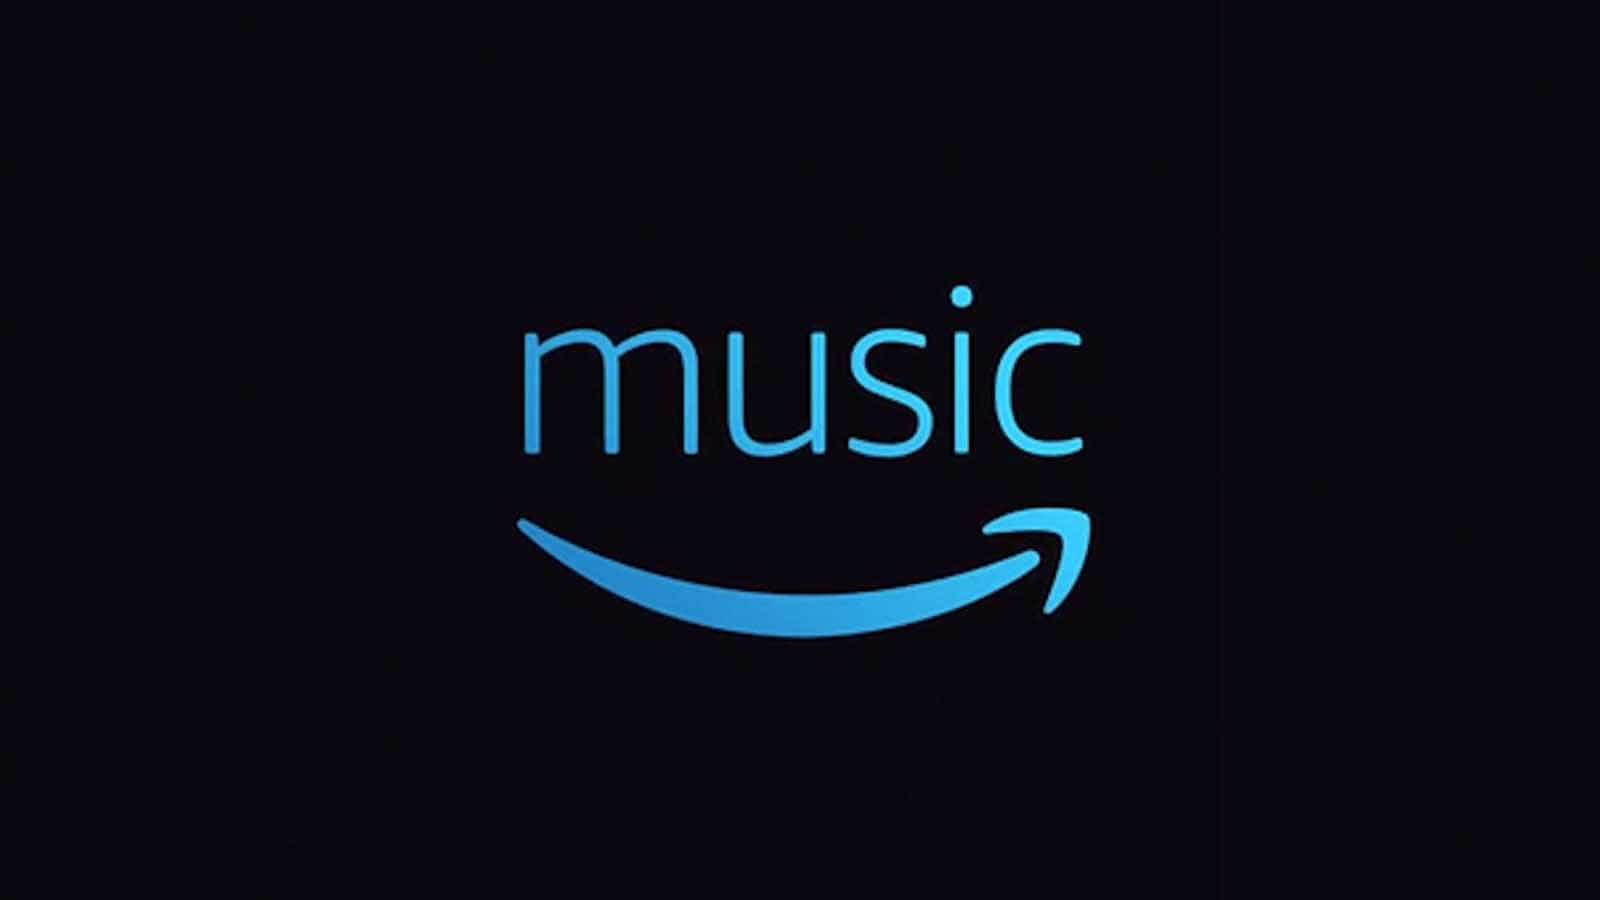 Amazon Music Logo - Amazon adds free music through Amazon Music to smartphones and TVs